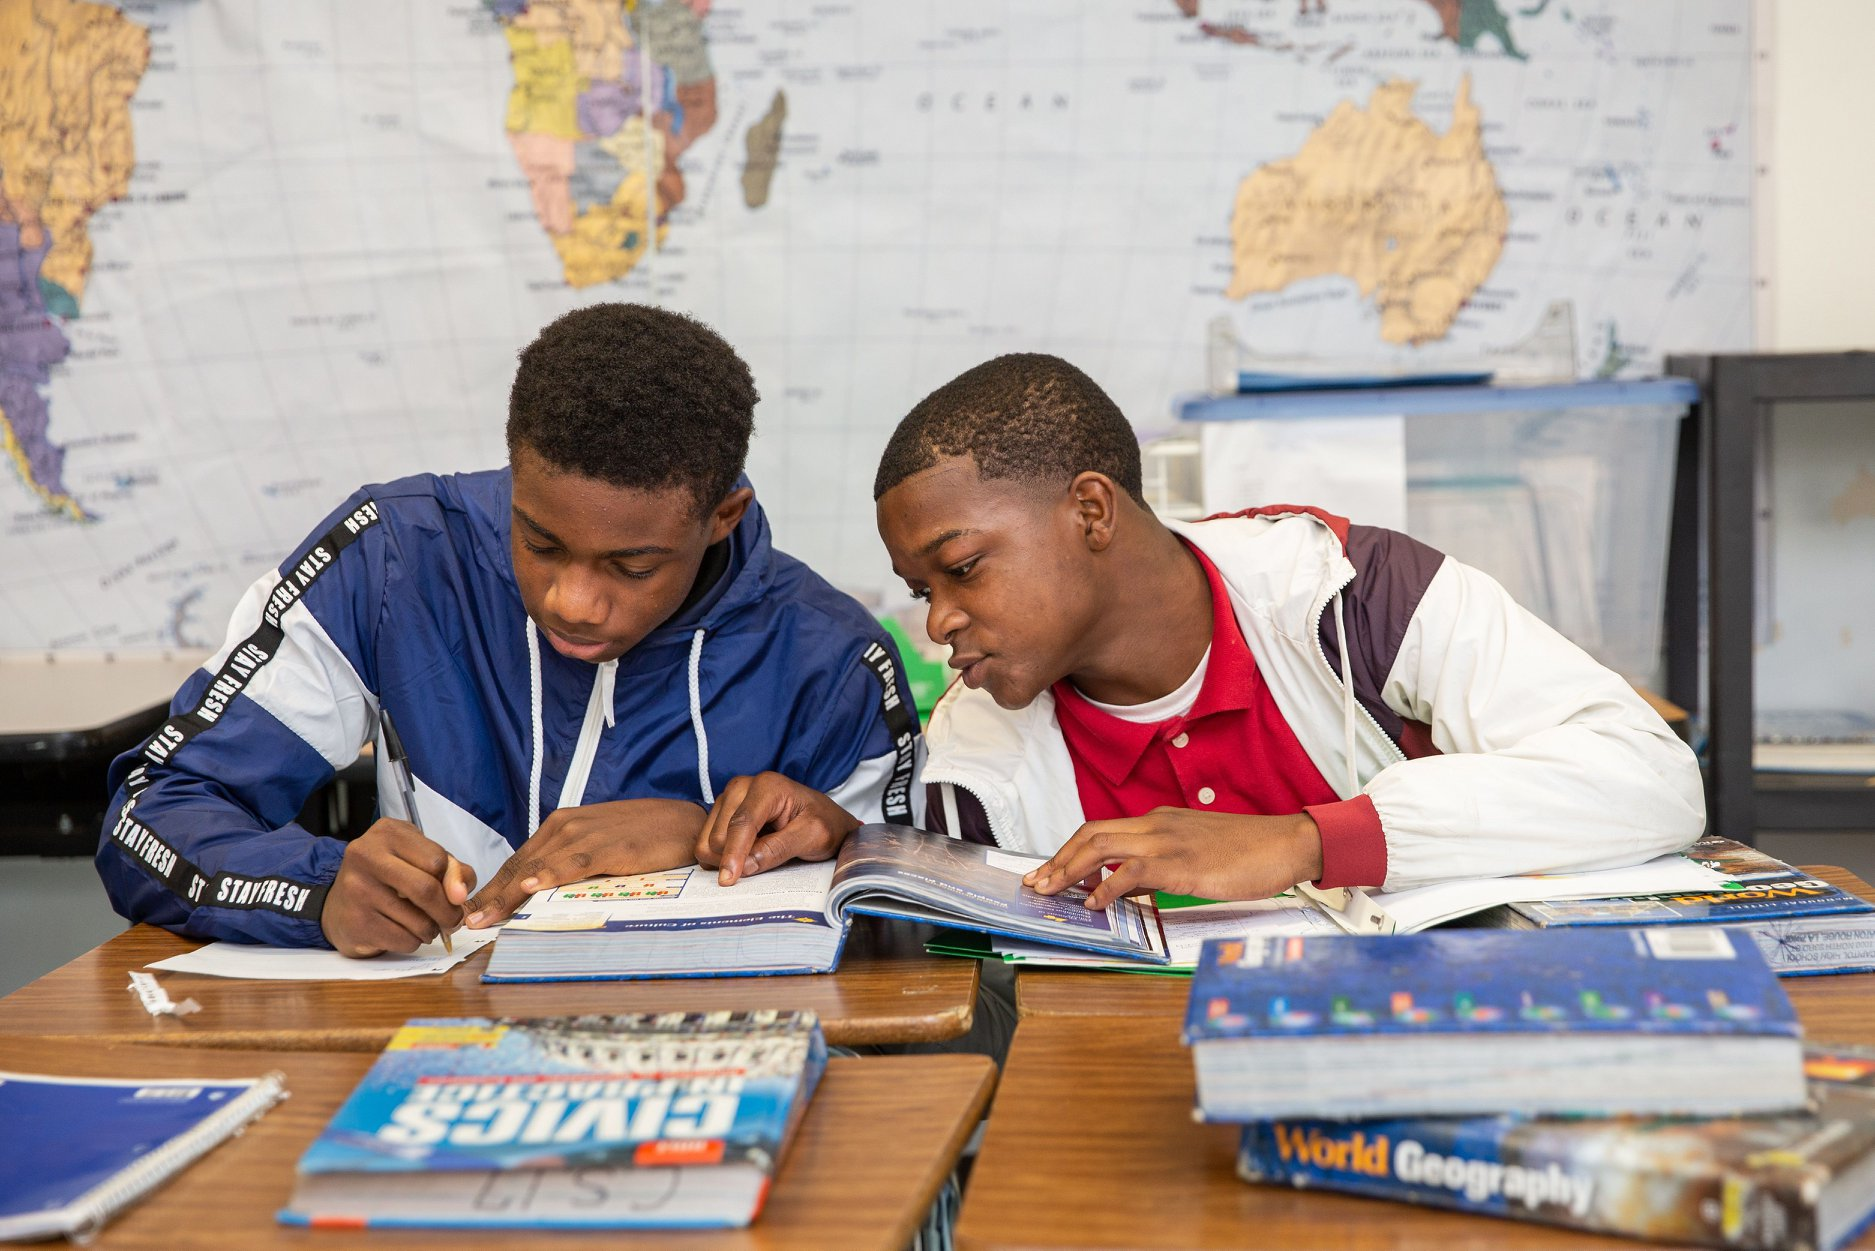 Two high school students reading a text book together.